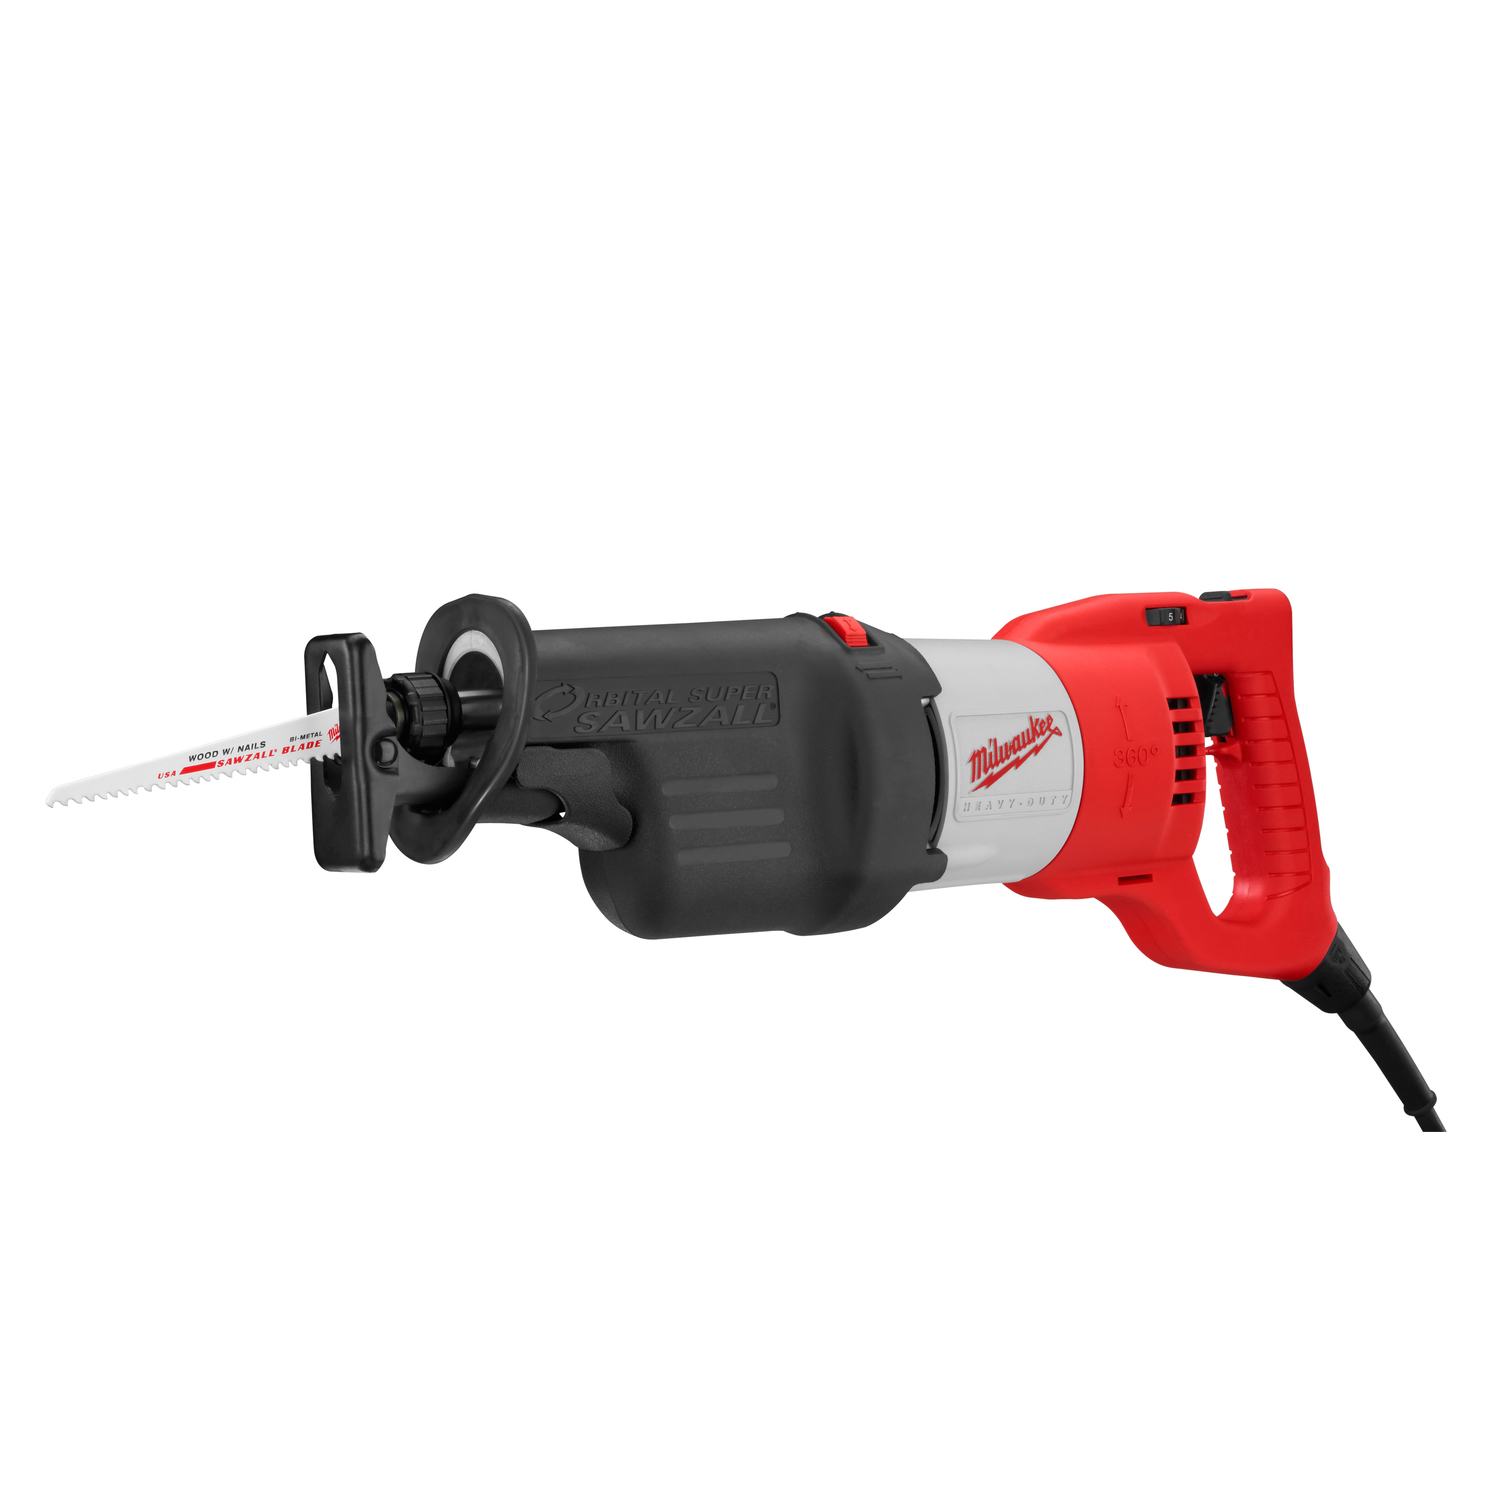 hight resolution of milwaukee super sawzall 1 1 4 in corded orbital reciprocating saw 13 amps